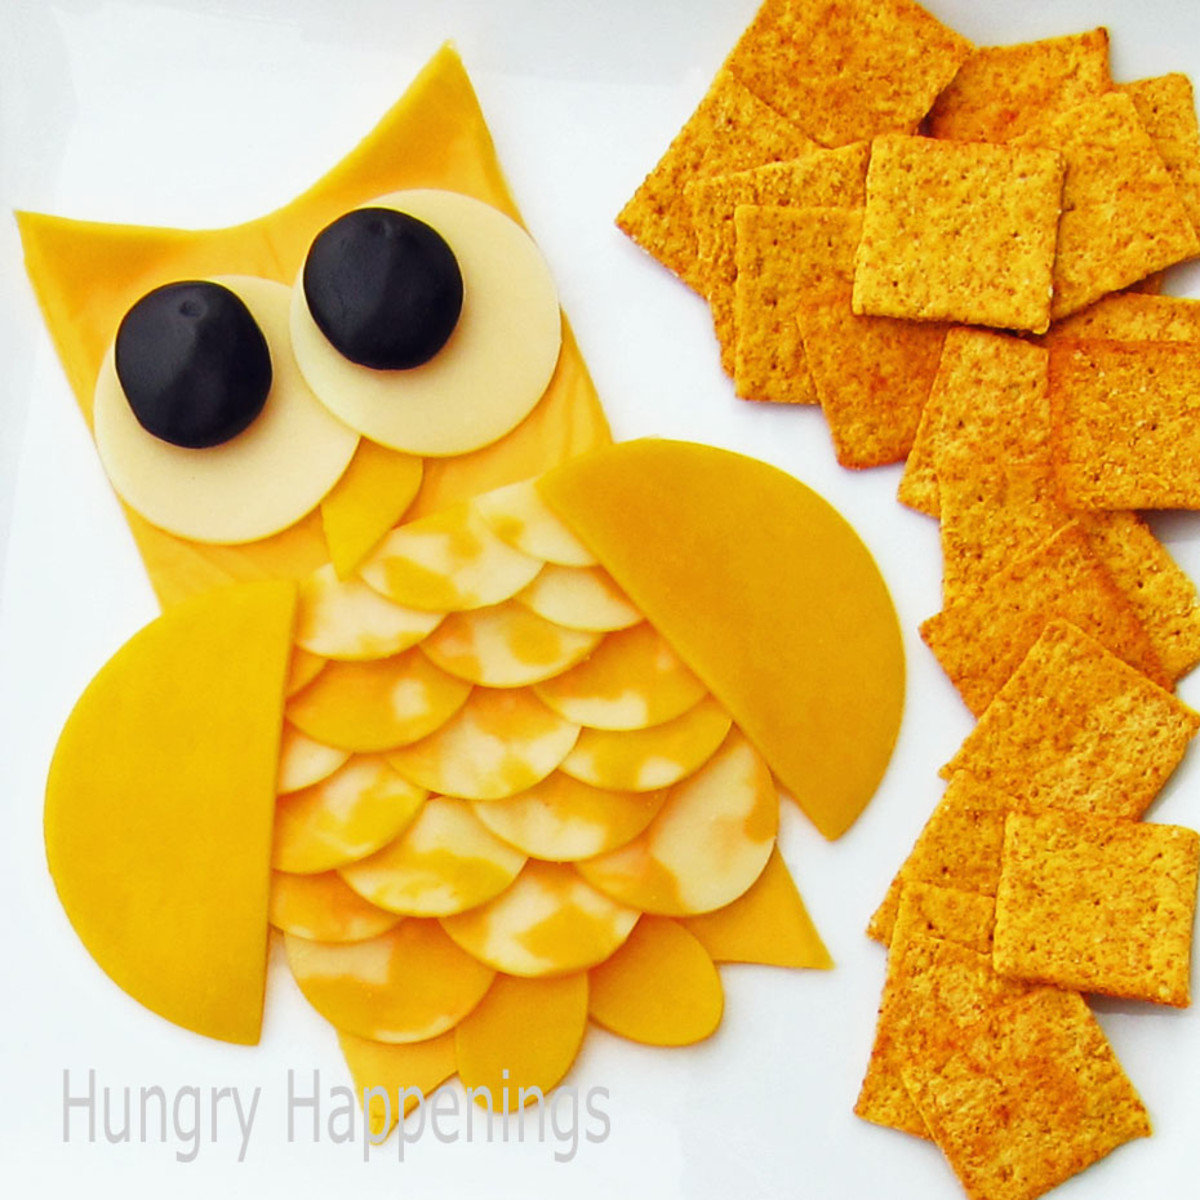 Owl Cheese Appetizer (http://www.hungryhappenings.com/2011/10/transform-ordinary-cheese-tray-into.html)